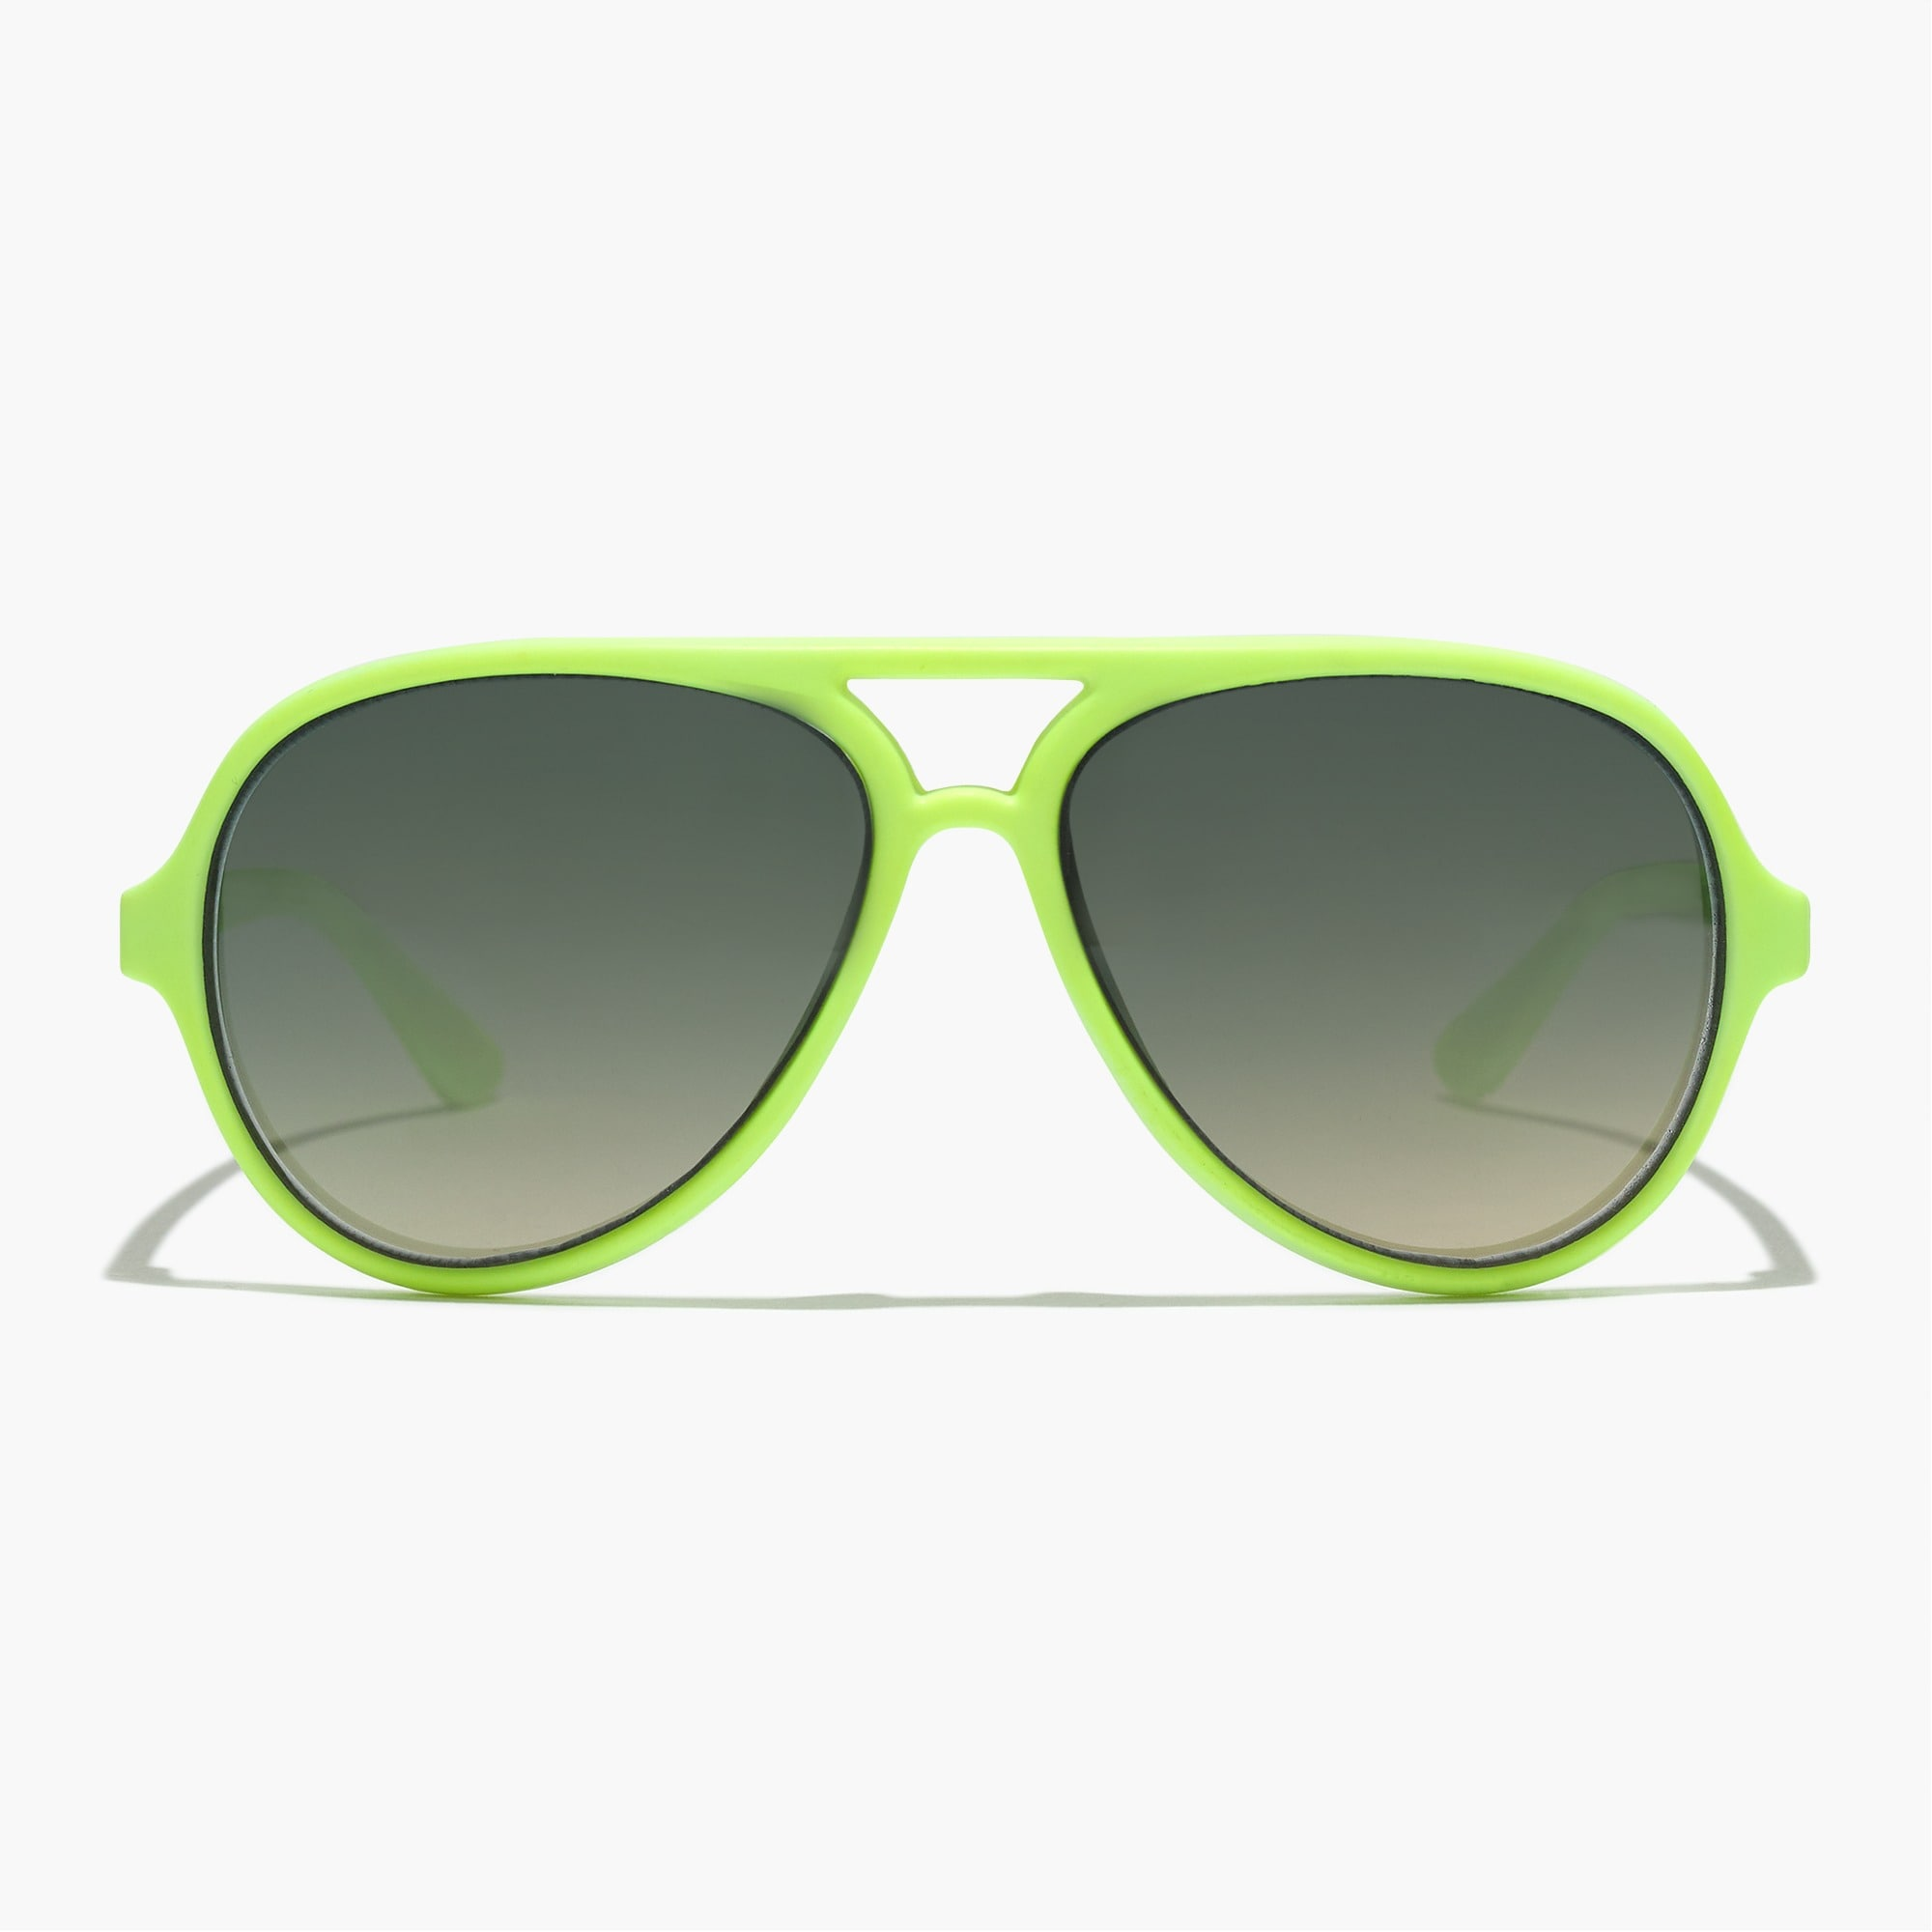 Kids' neon aviator sunglasses boy accessories c